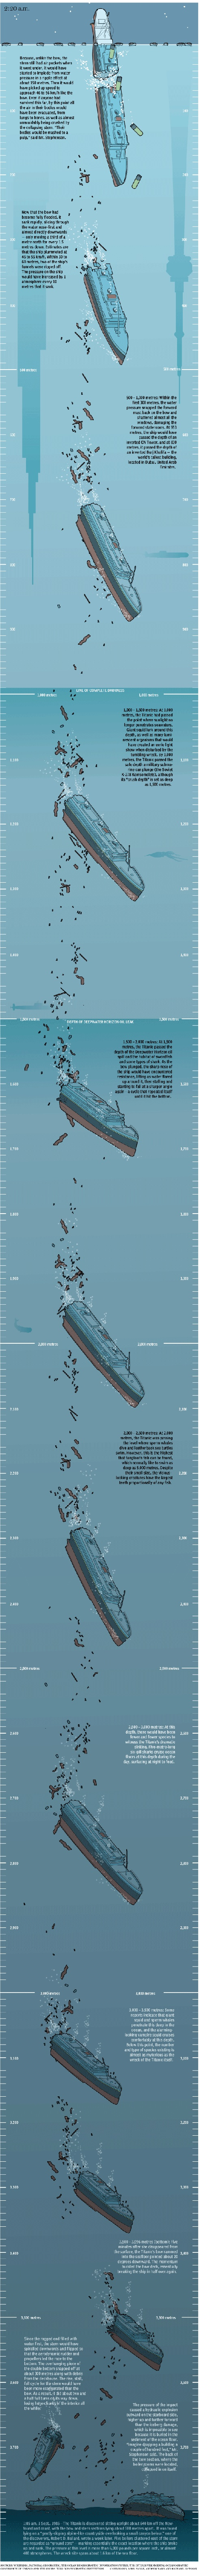 The fall of Titanic 2 #infographic